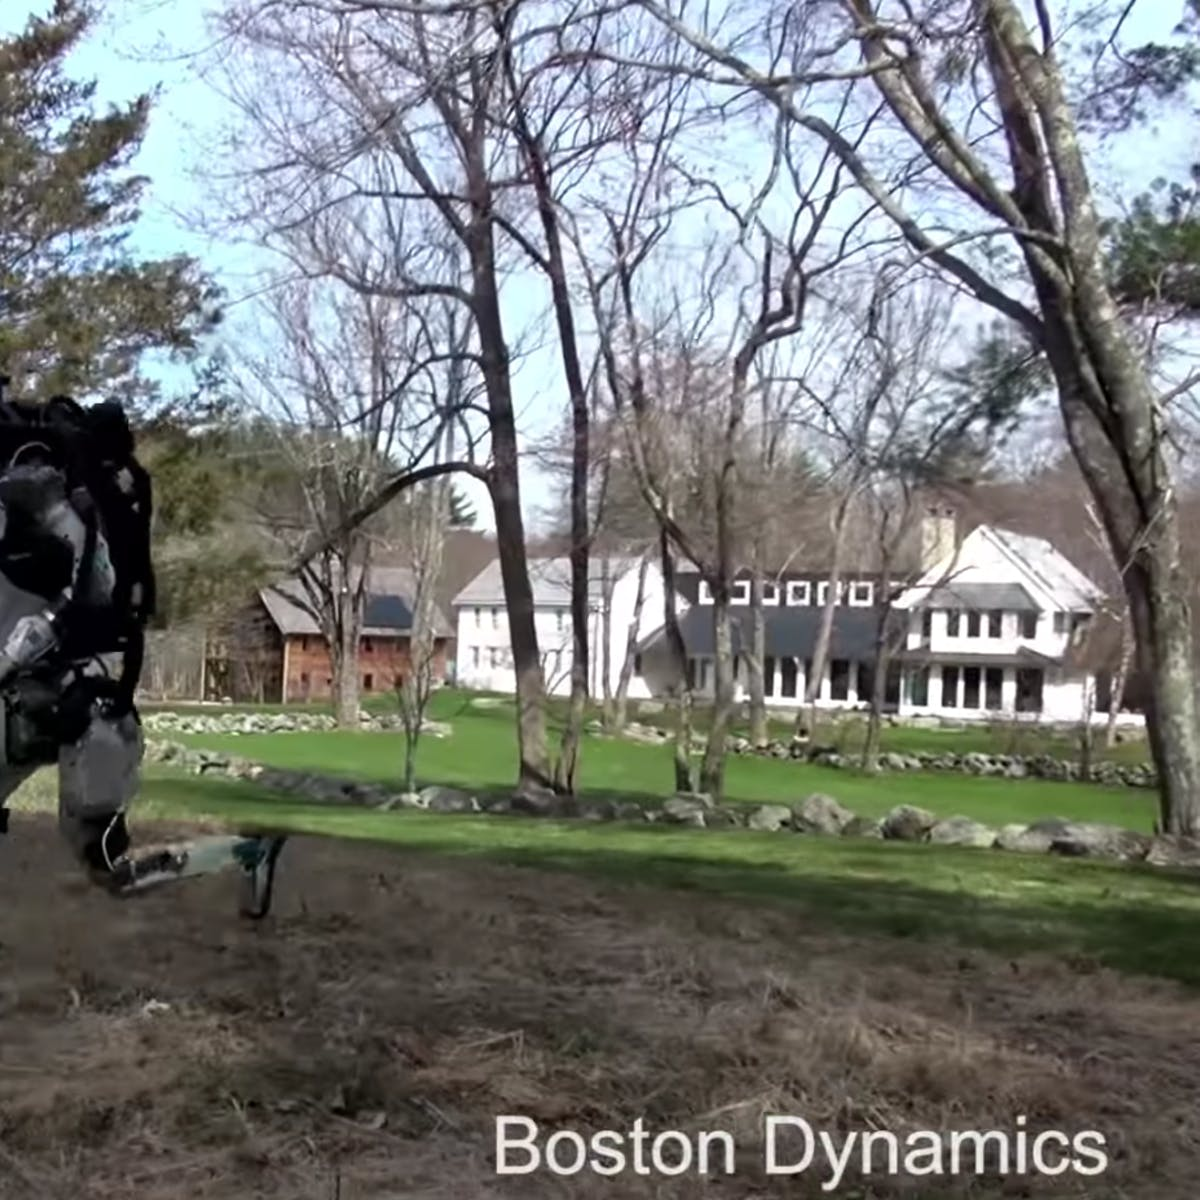 New Horrifying Tricks From Boston Dynamics' SpotMini and Atlas